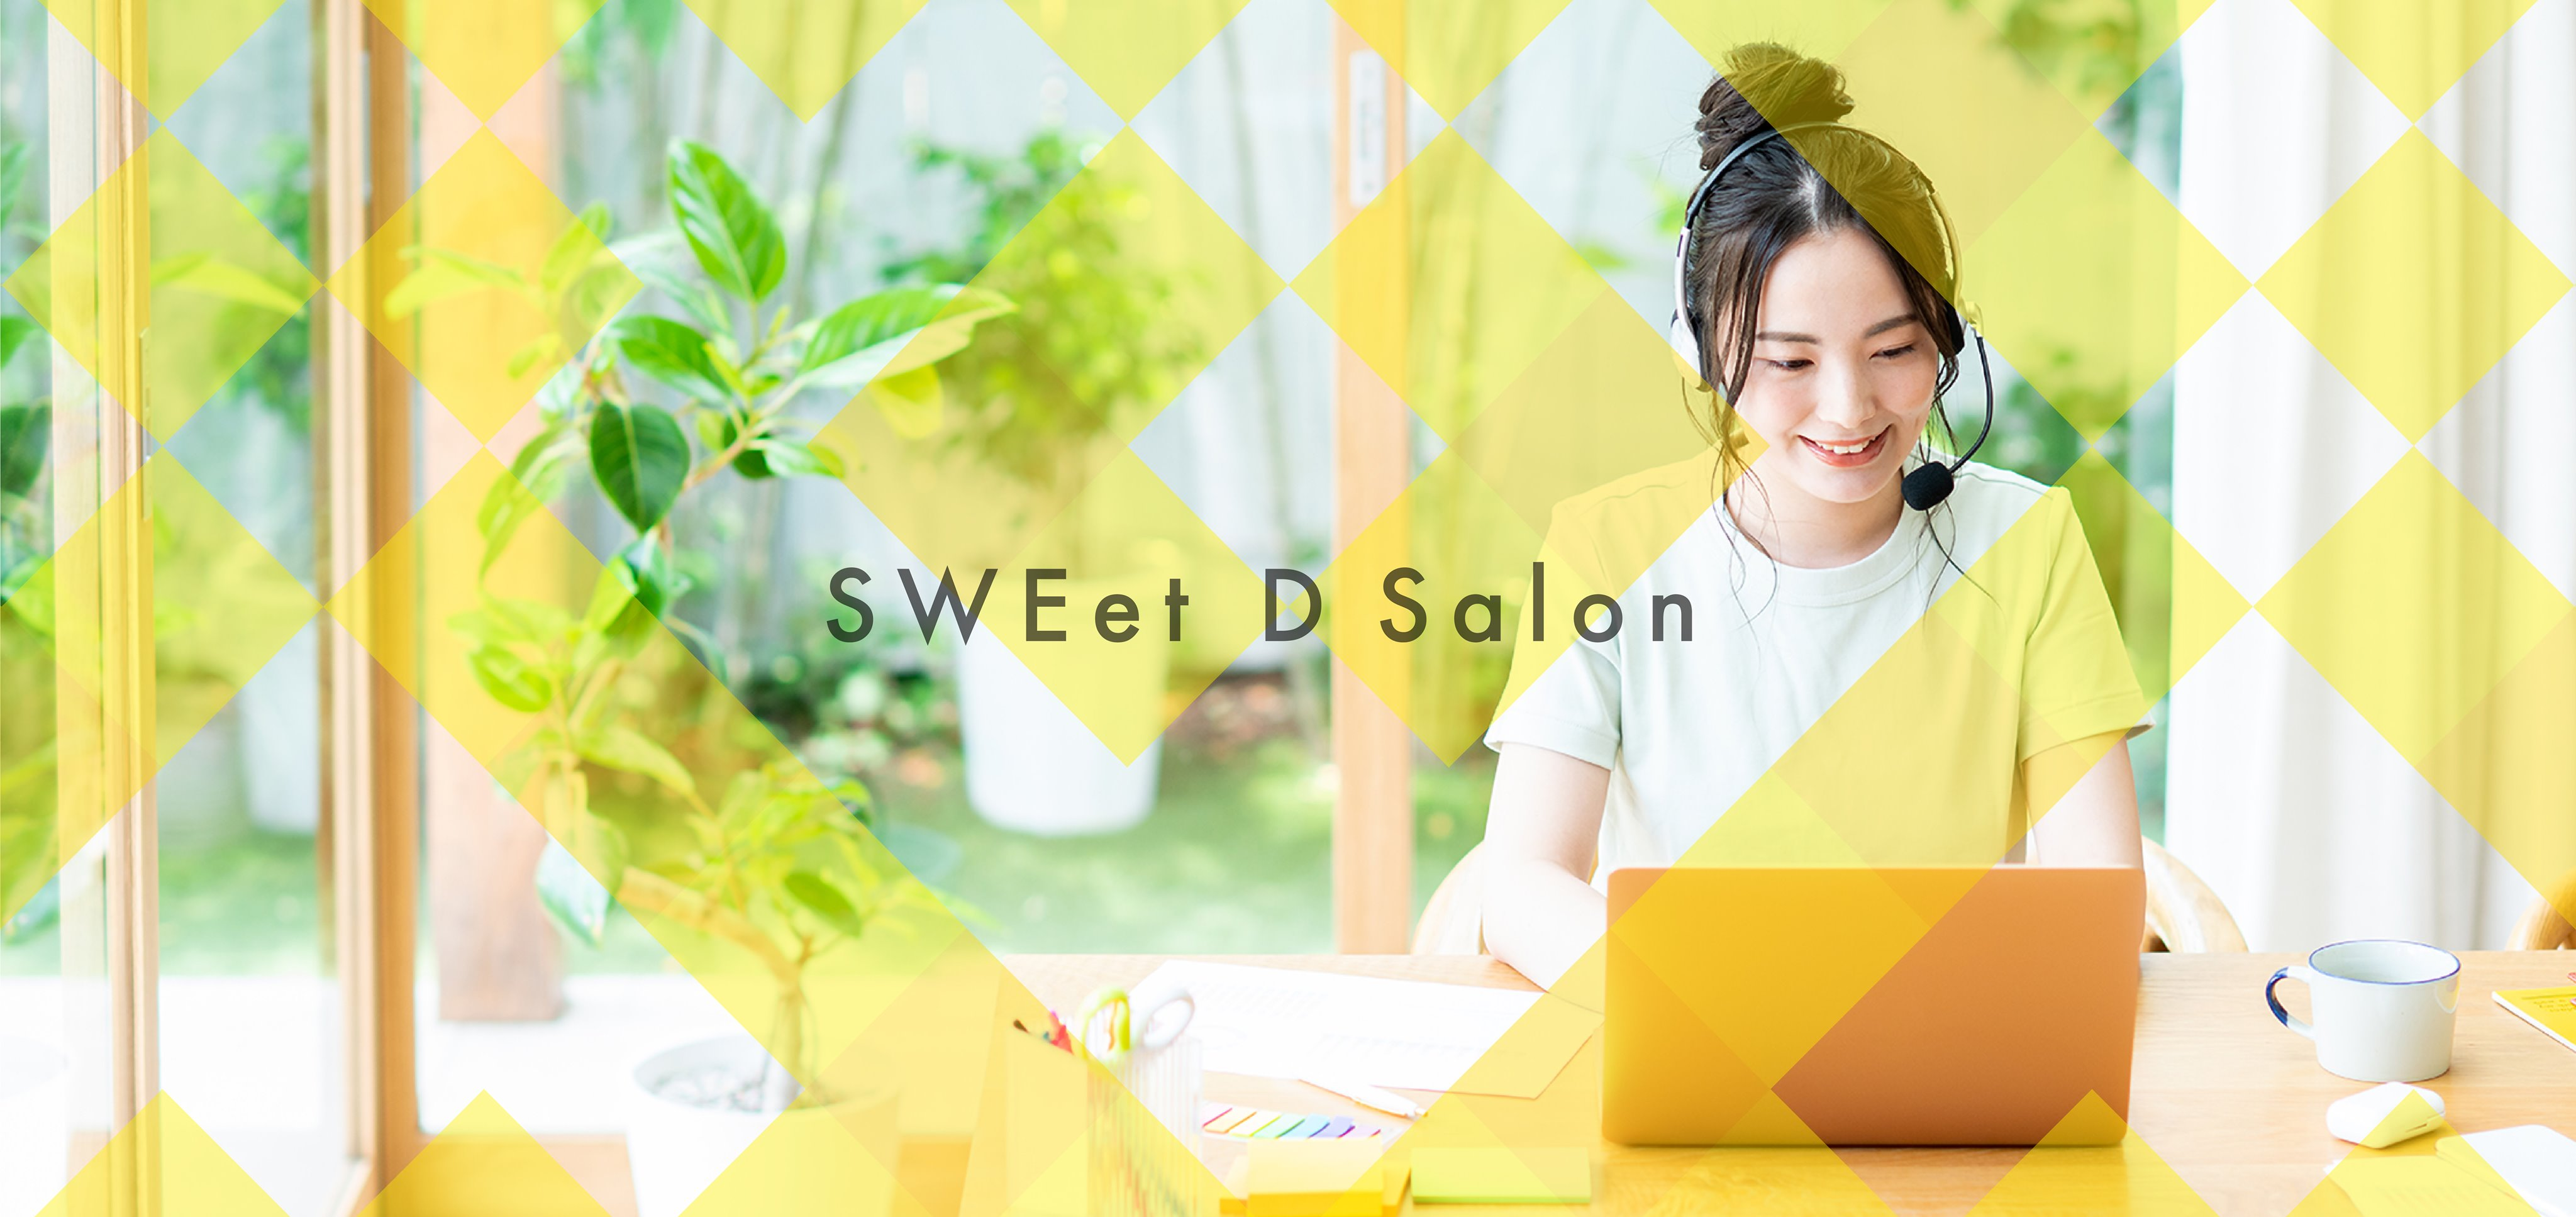 SWEet D Salon